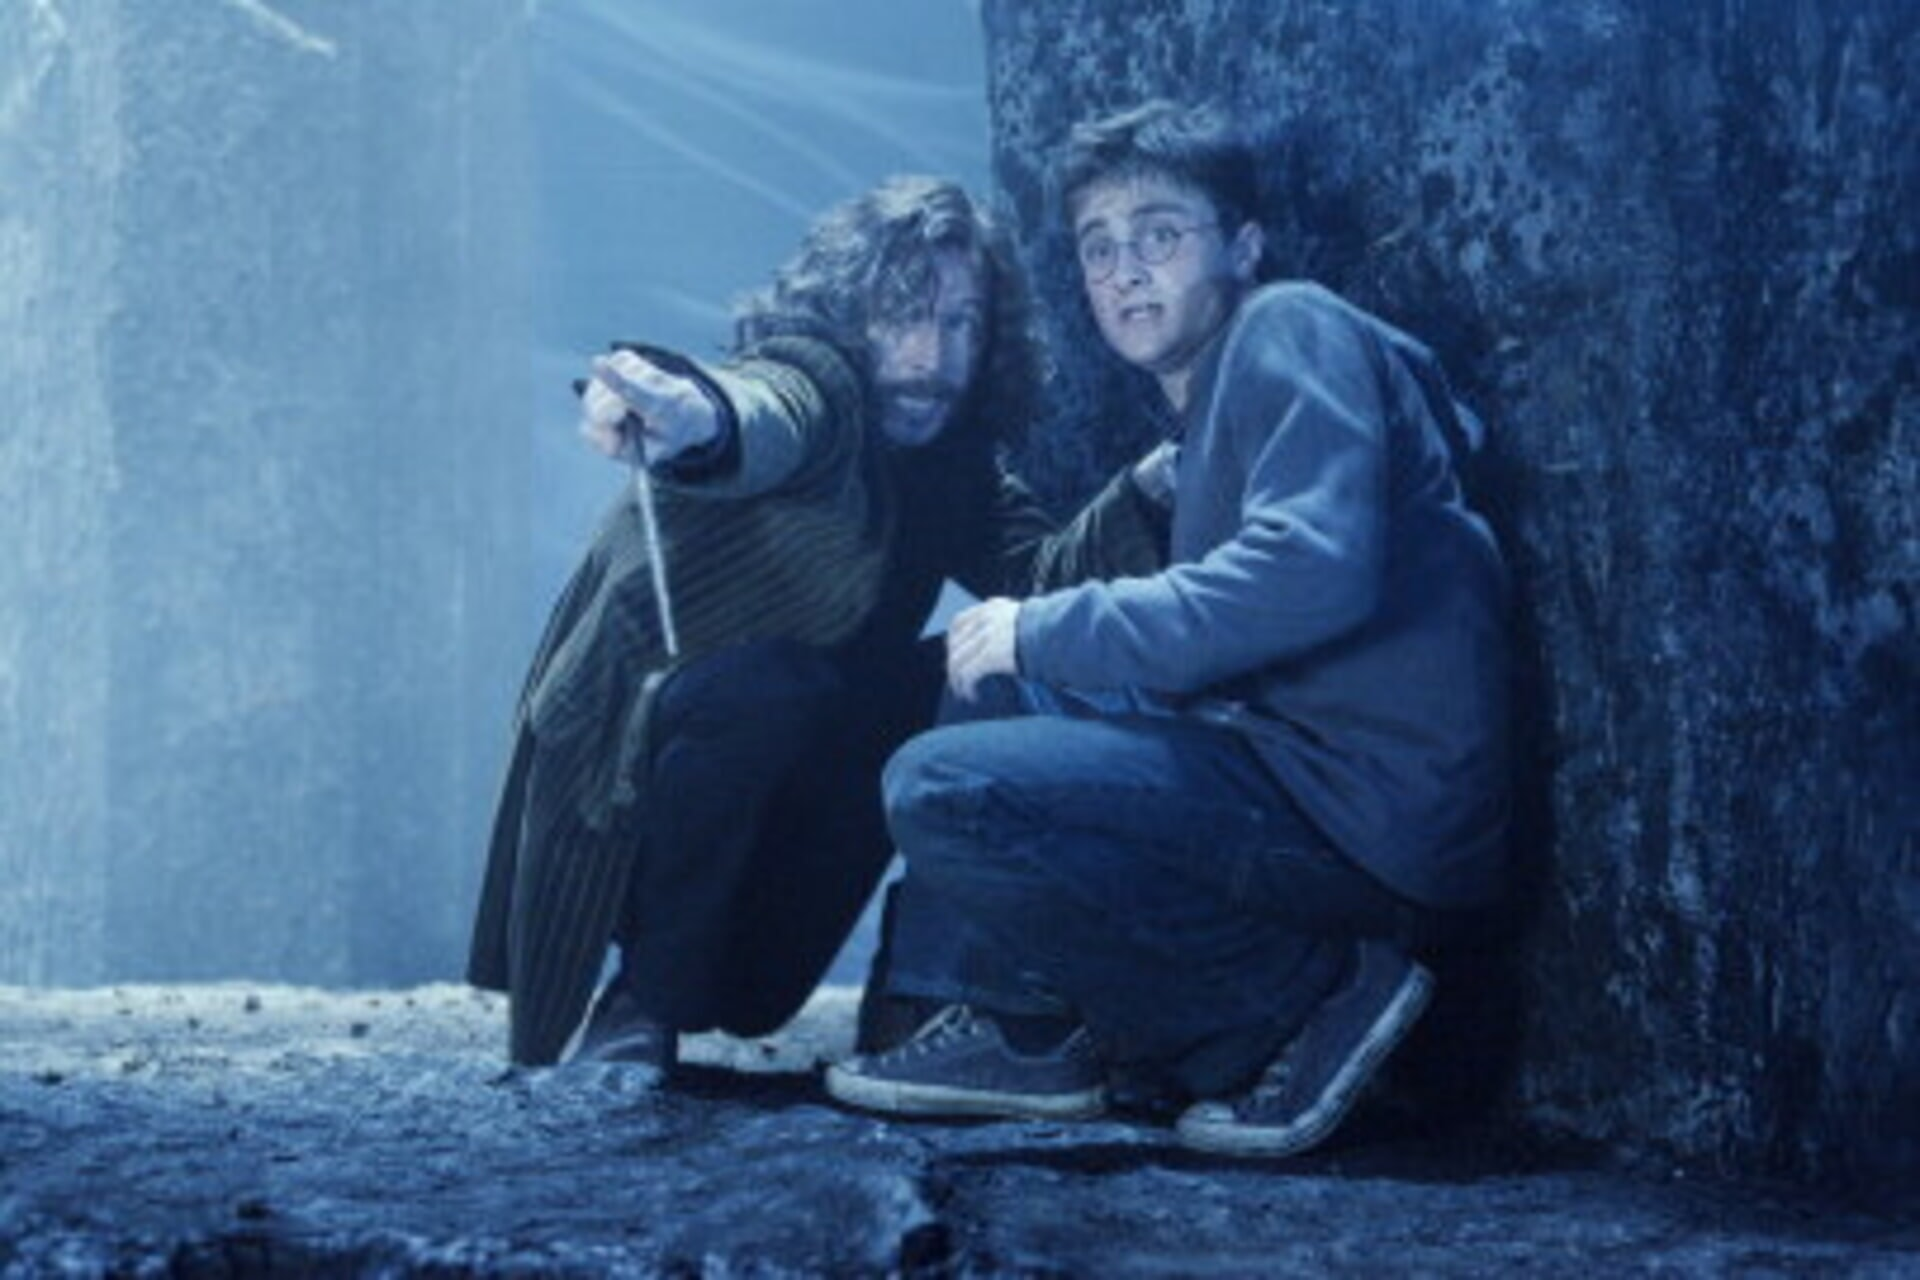 Harry Potter and the Order of the Phoenix - Image 27